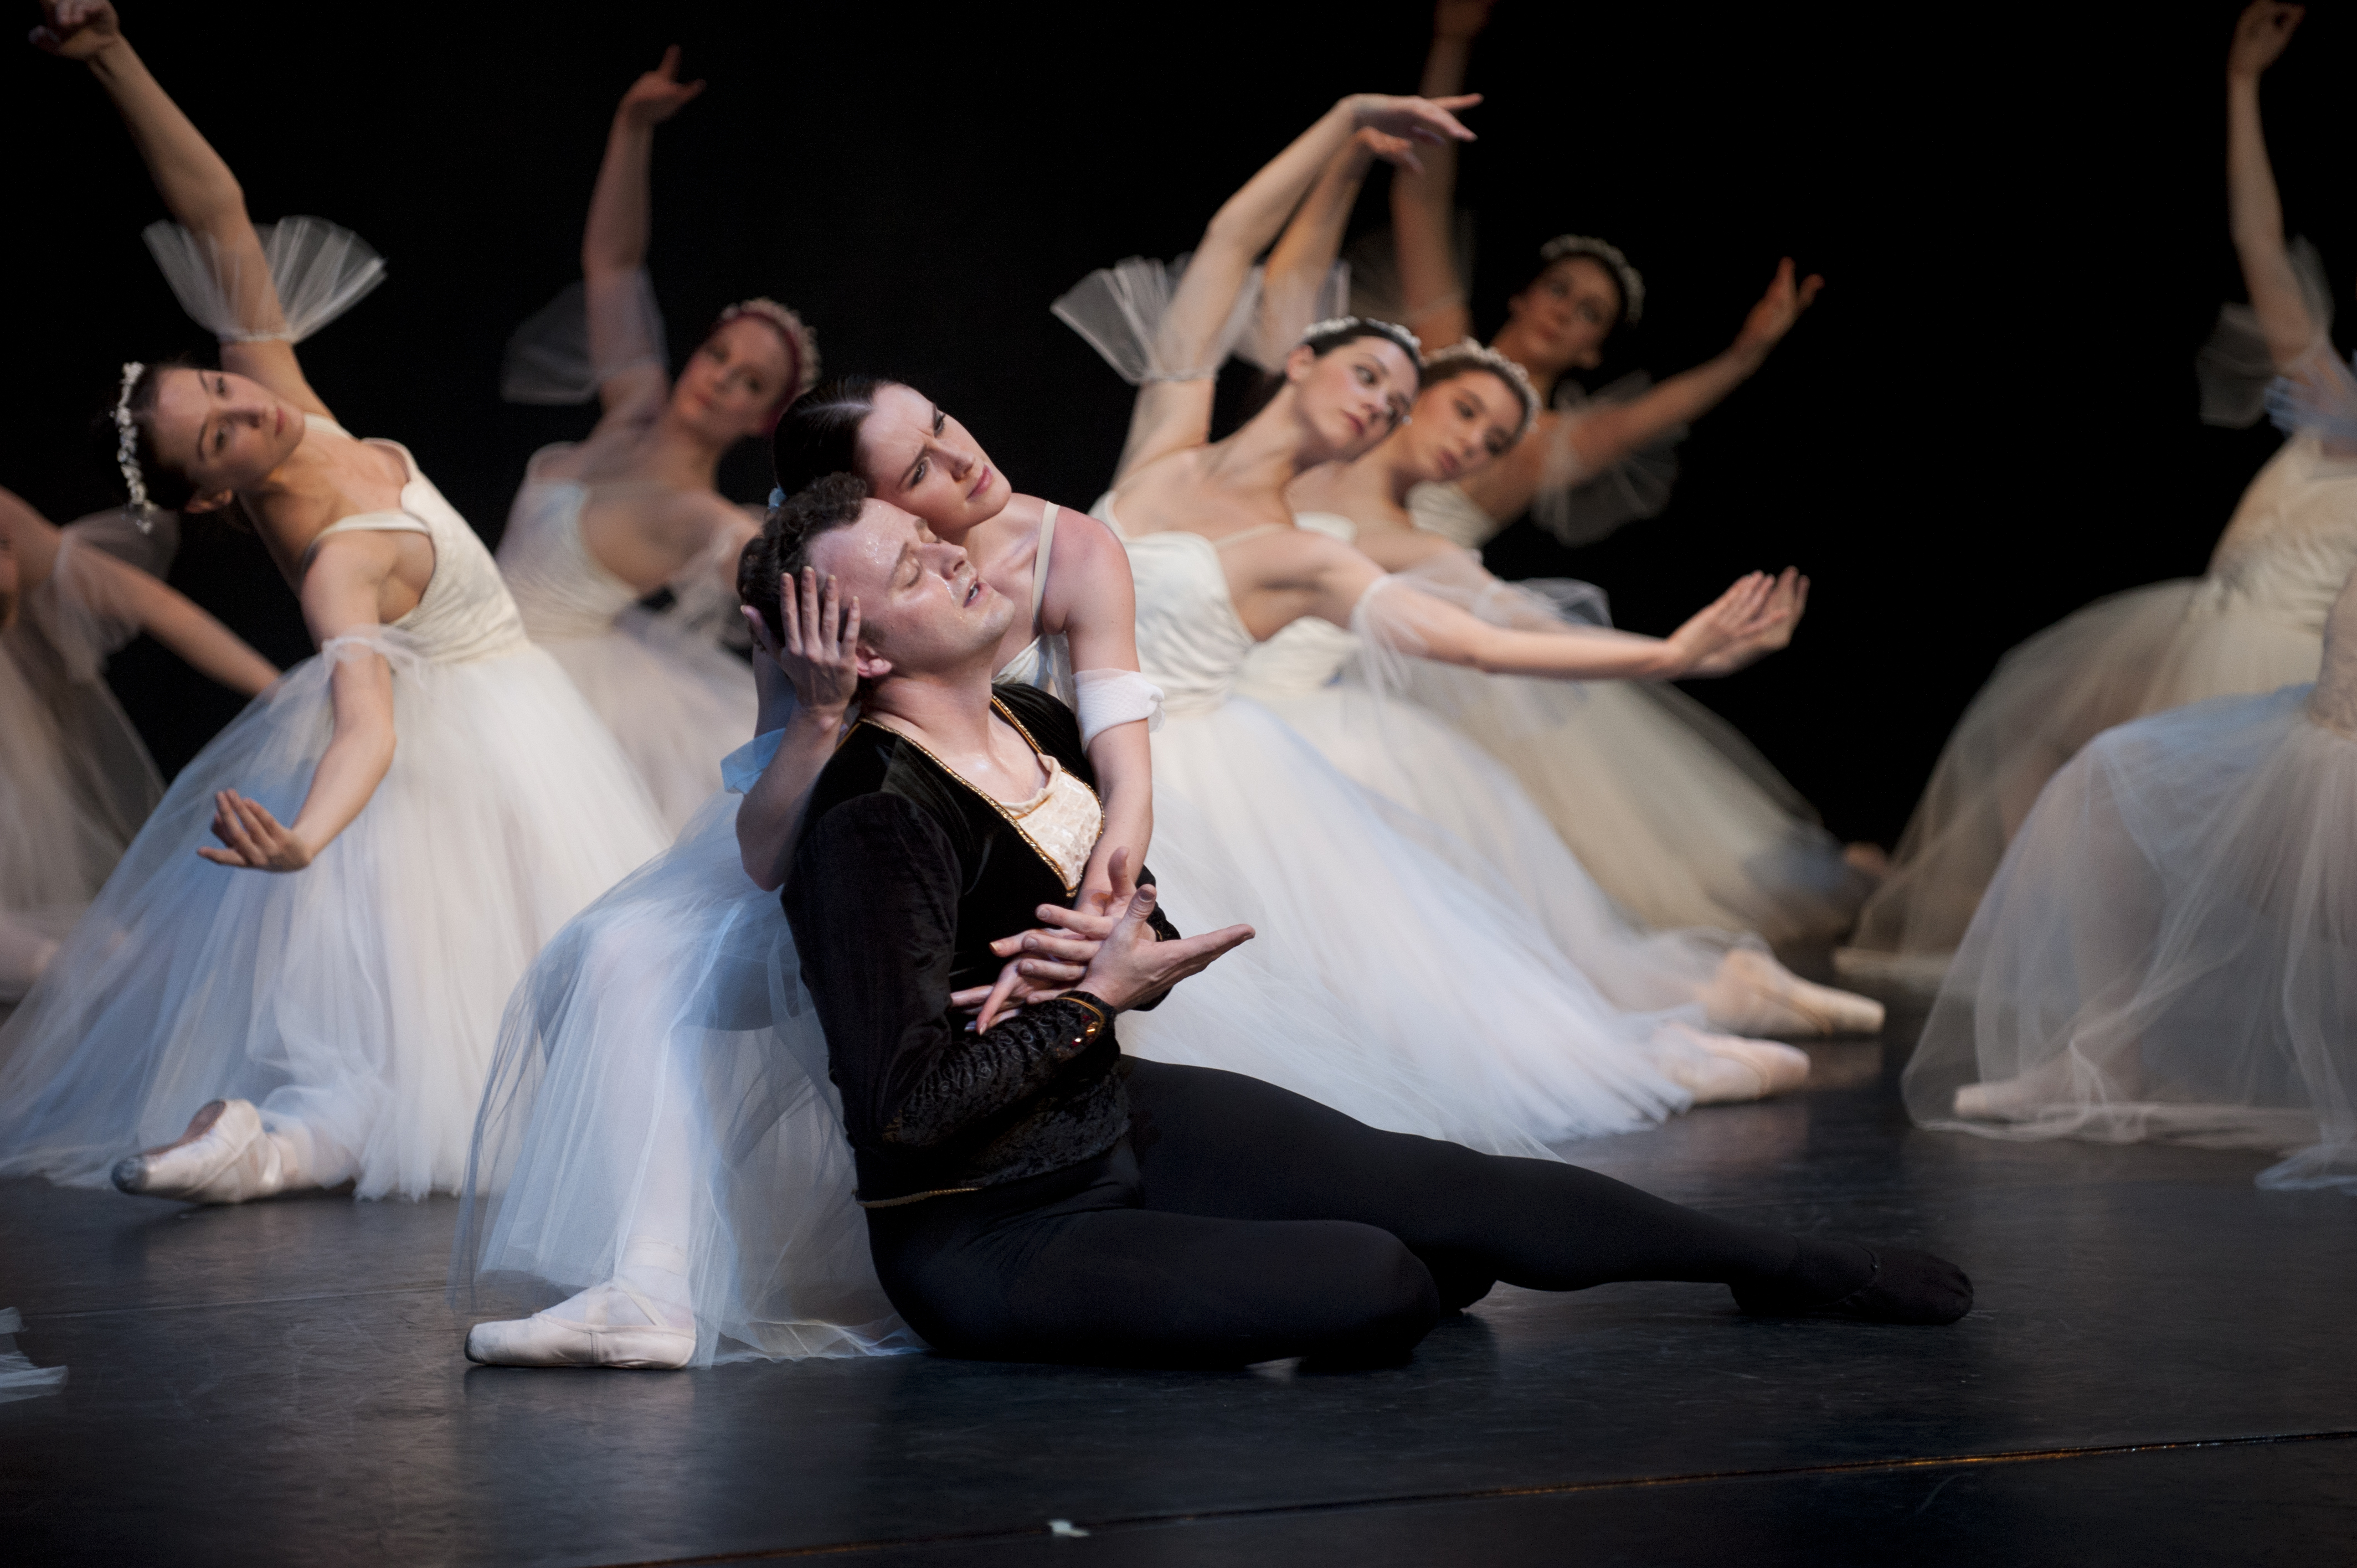 Victorian State Ballet presents Giselle on Saturday 5 October 2019 at Cardinia Cultural Centre.